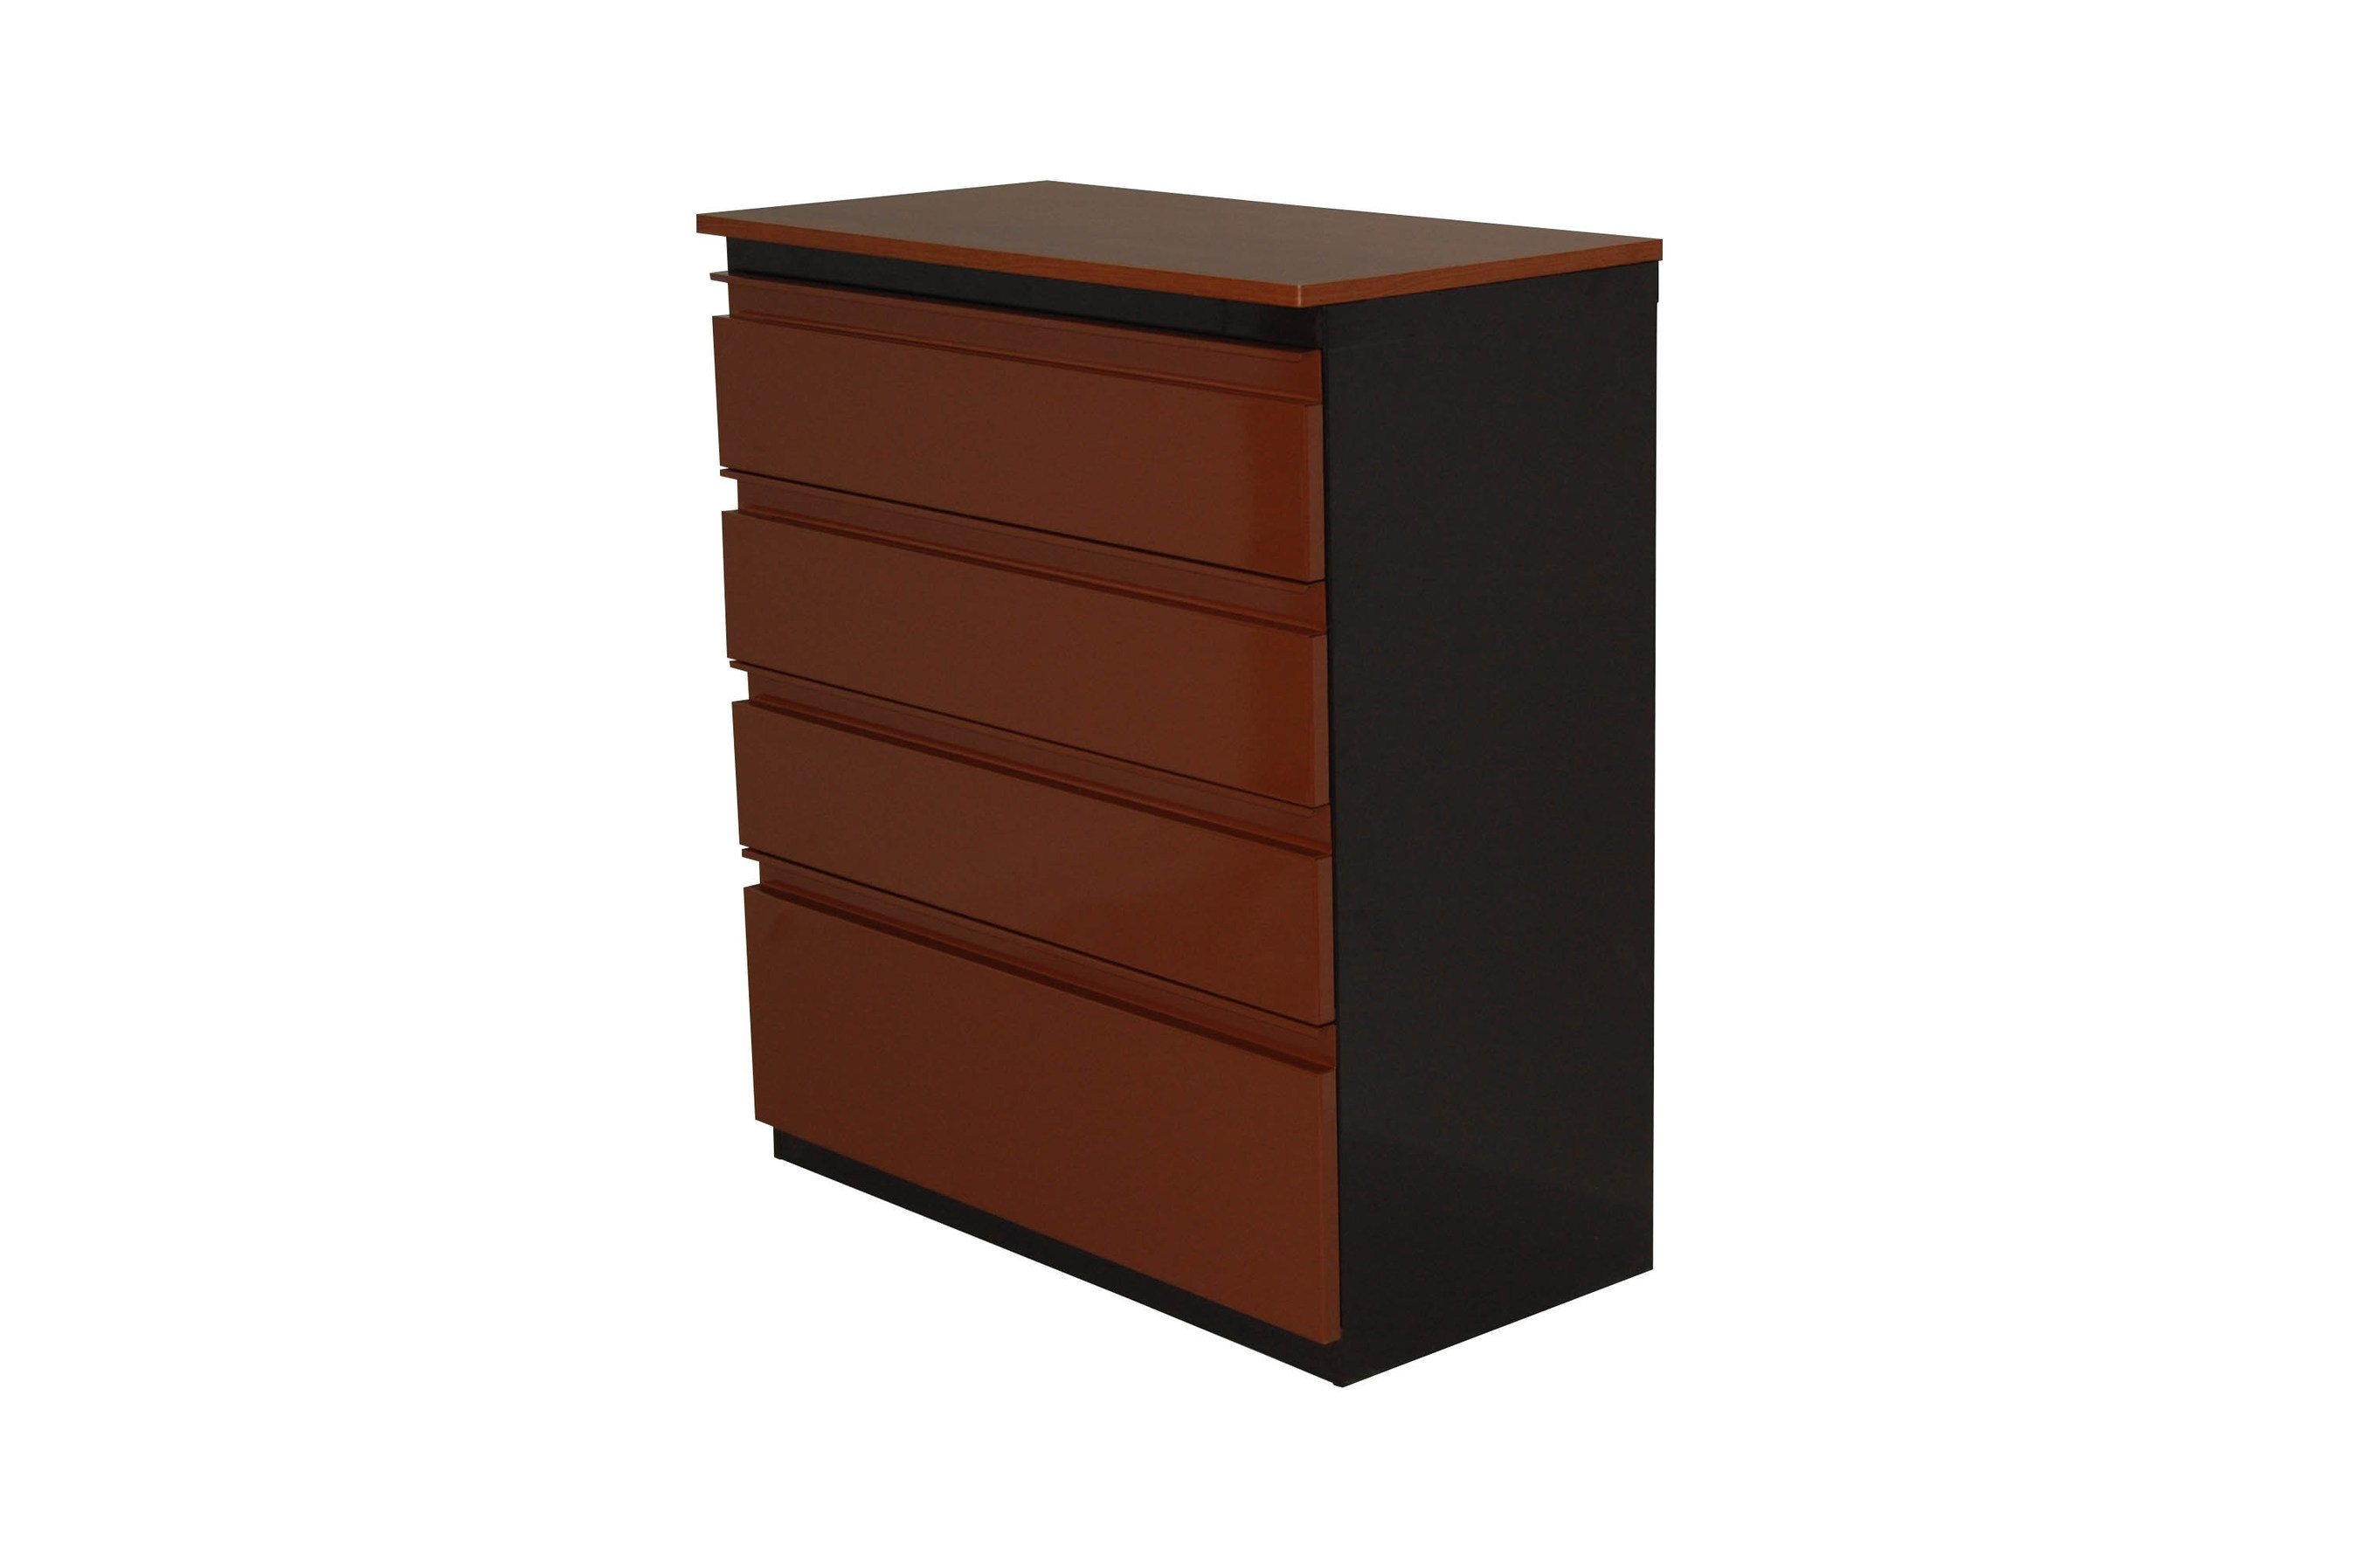 Central City Bed(R) now offers a range of bed bug resistant furniture including chairs, tables, storage wardrobes and dressers. Most items available in varying sizes and colors. See product line at http://www.centralcitybed.org/products/